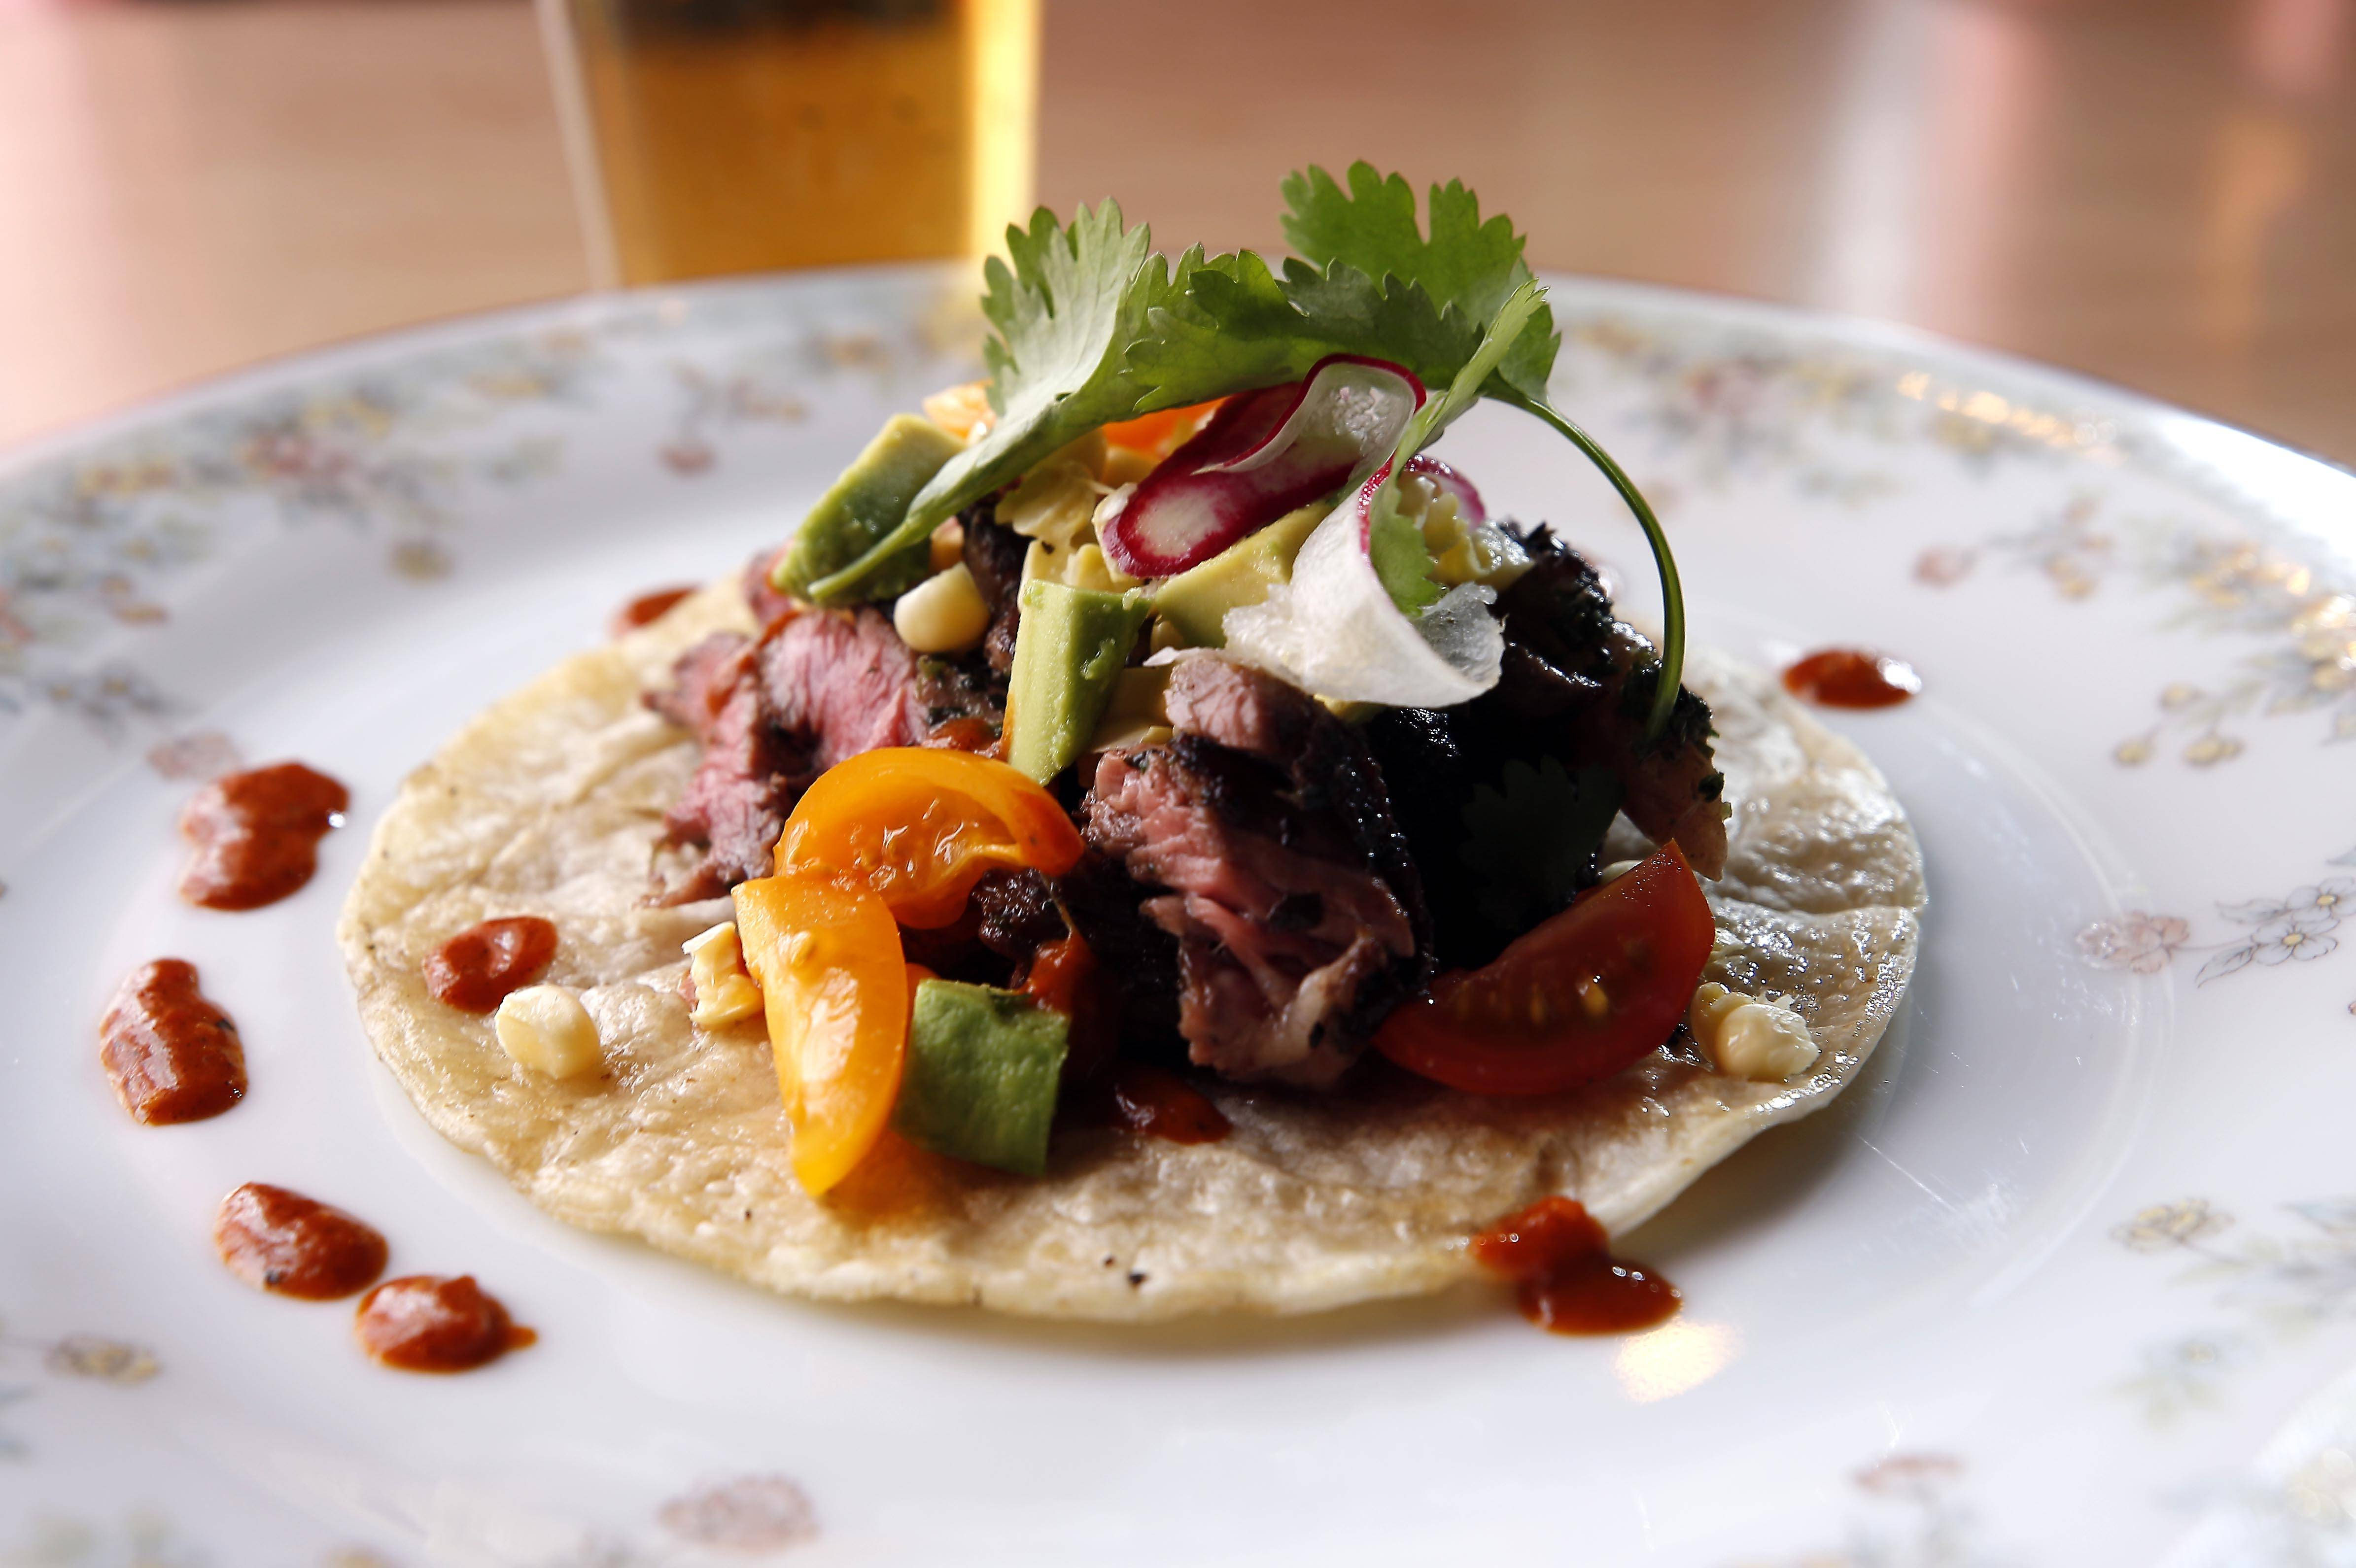 Taco Tuesday are pleasing to the eye and palate at Craft Urban in Geneva.